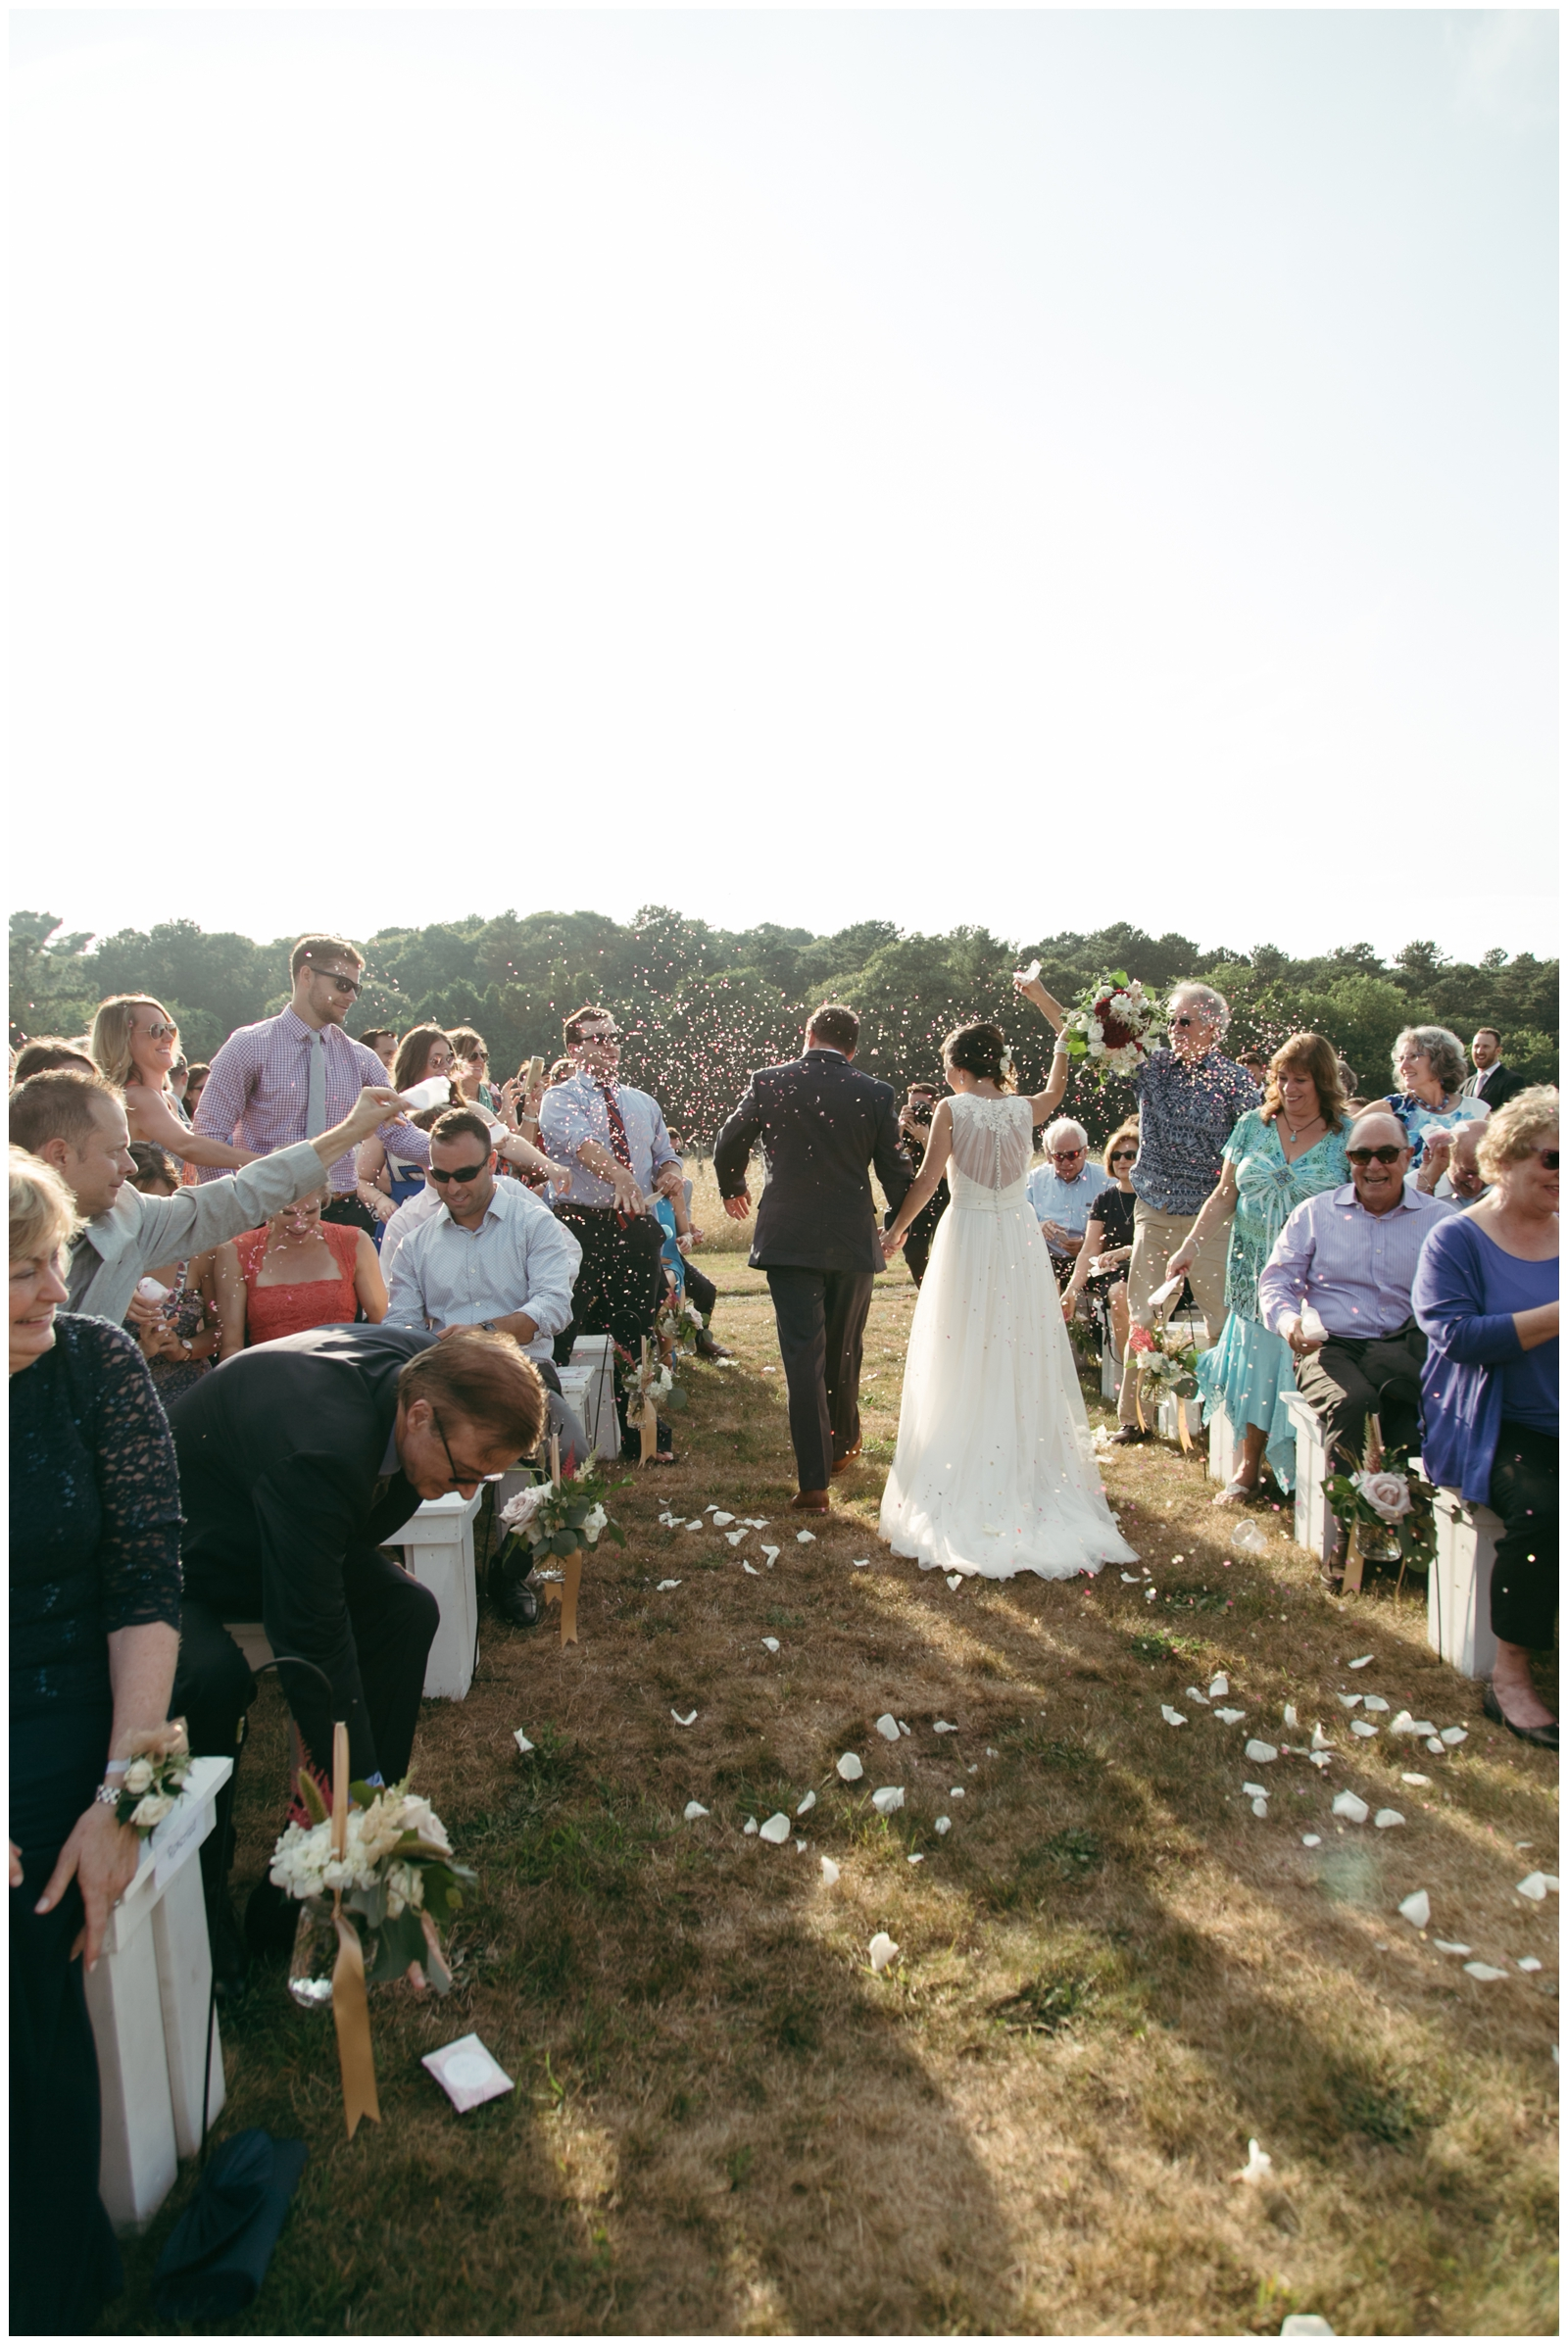 Bourne-Farm-Wedding-Cape-Cod-wedding-photographer-Bailey-Q-Photo-045.jpg